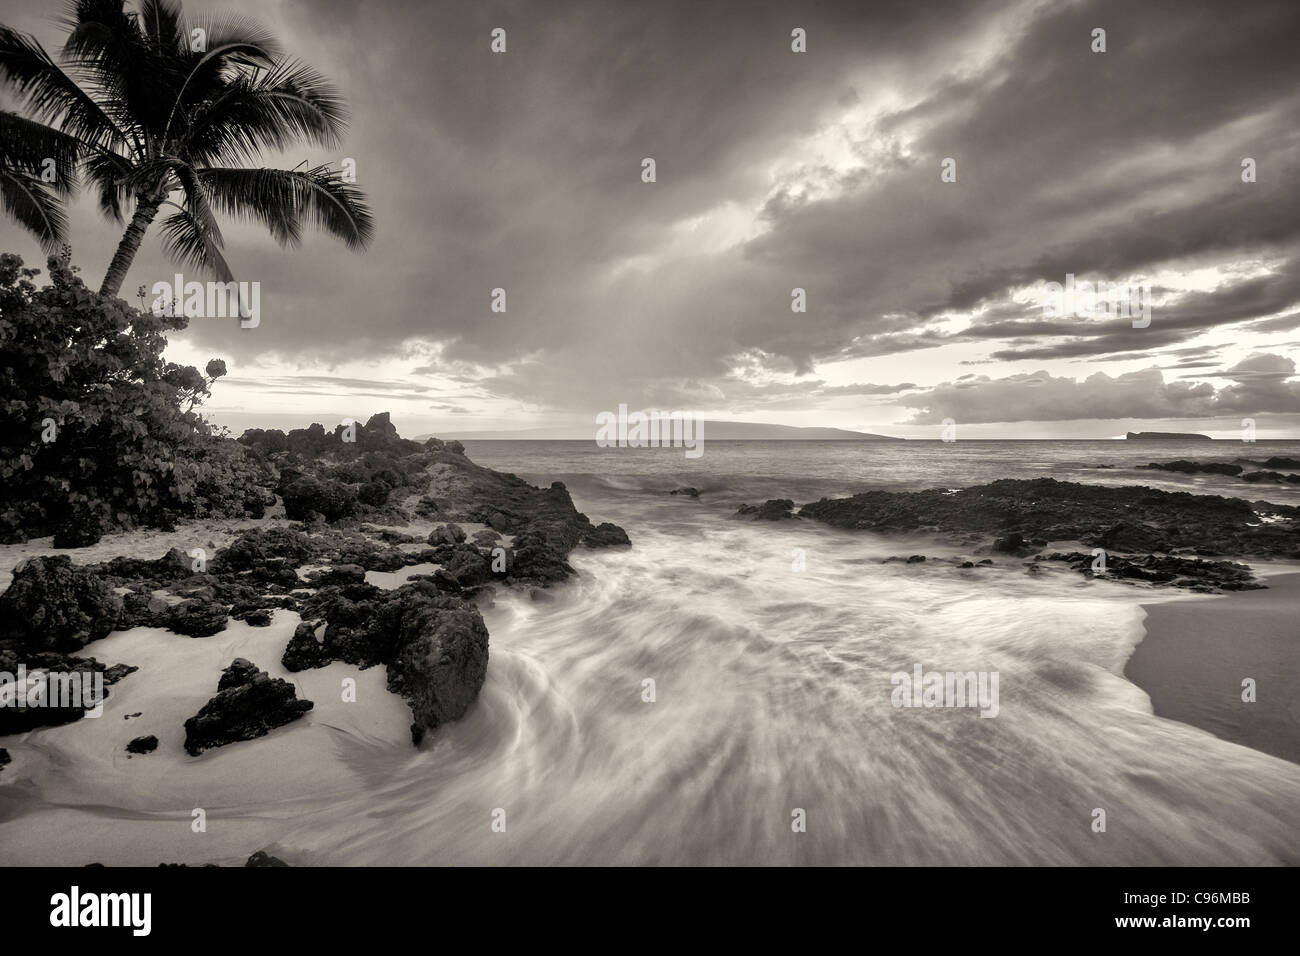 Sunset clouds and wave with palm trees. Maui, Hawaii. - Stock Image